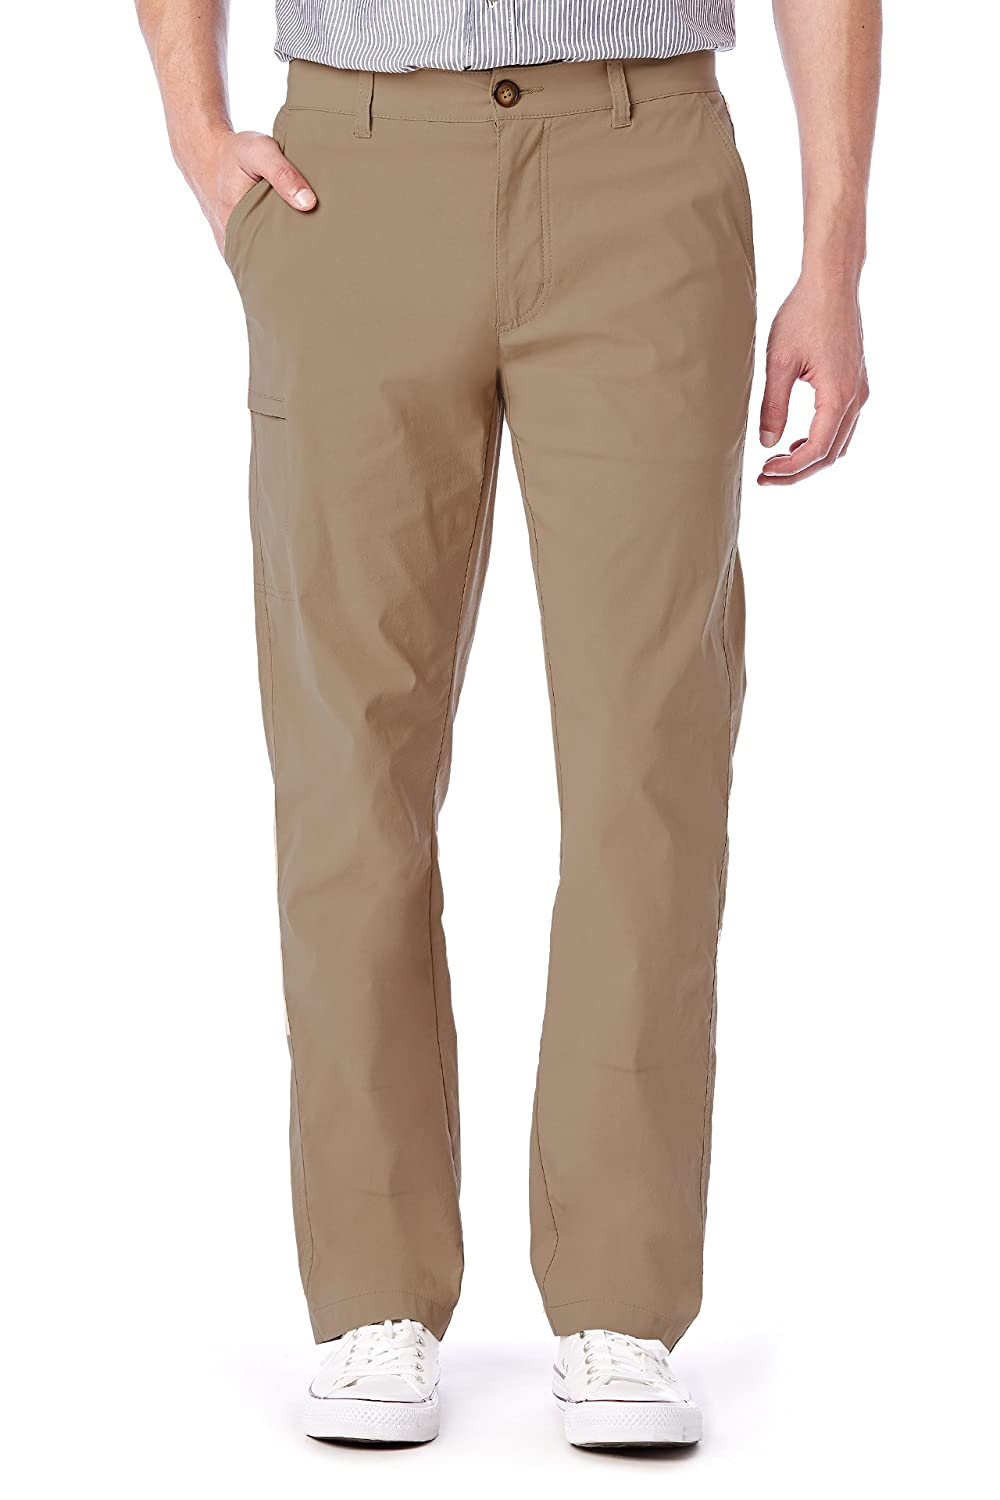 UNIONBAY Men's Rainier Lightweight Comfort Travel Tech Chino Pants Y15CXWE